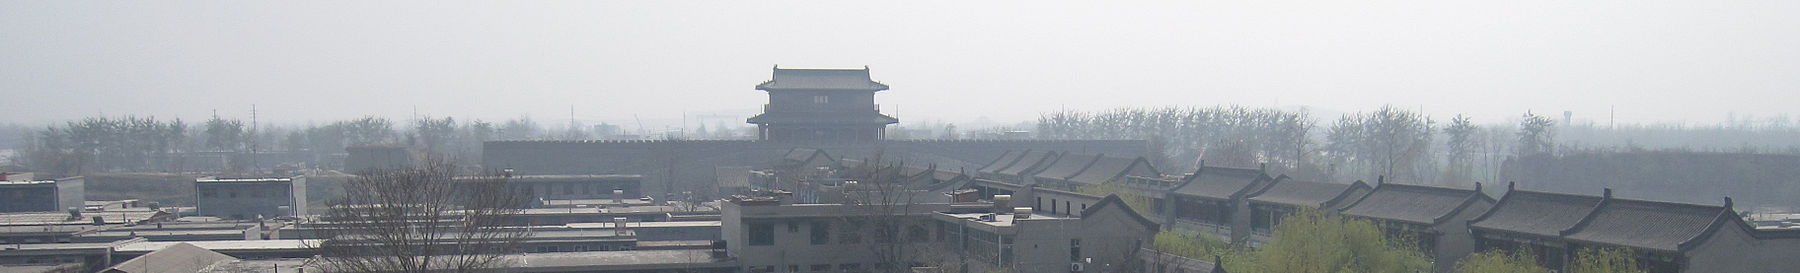 Southern part zhengding city wall.jpg